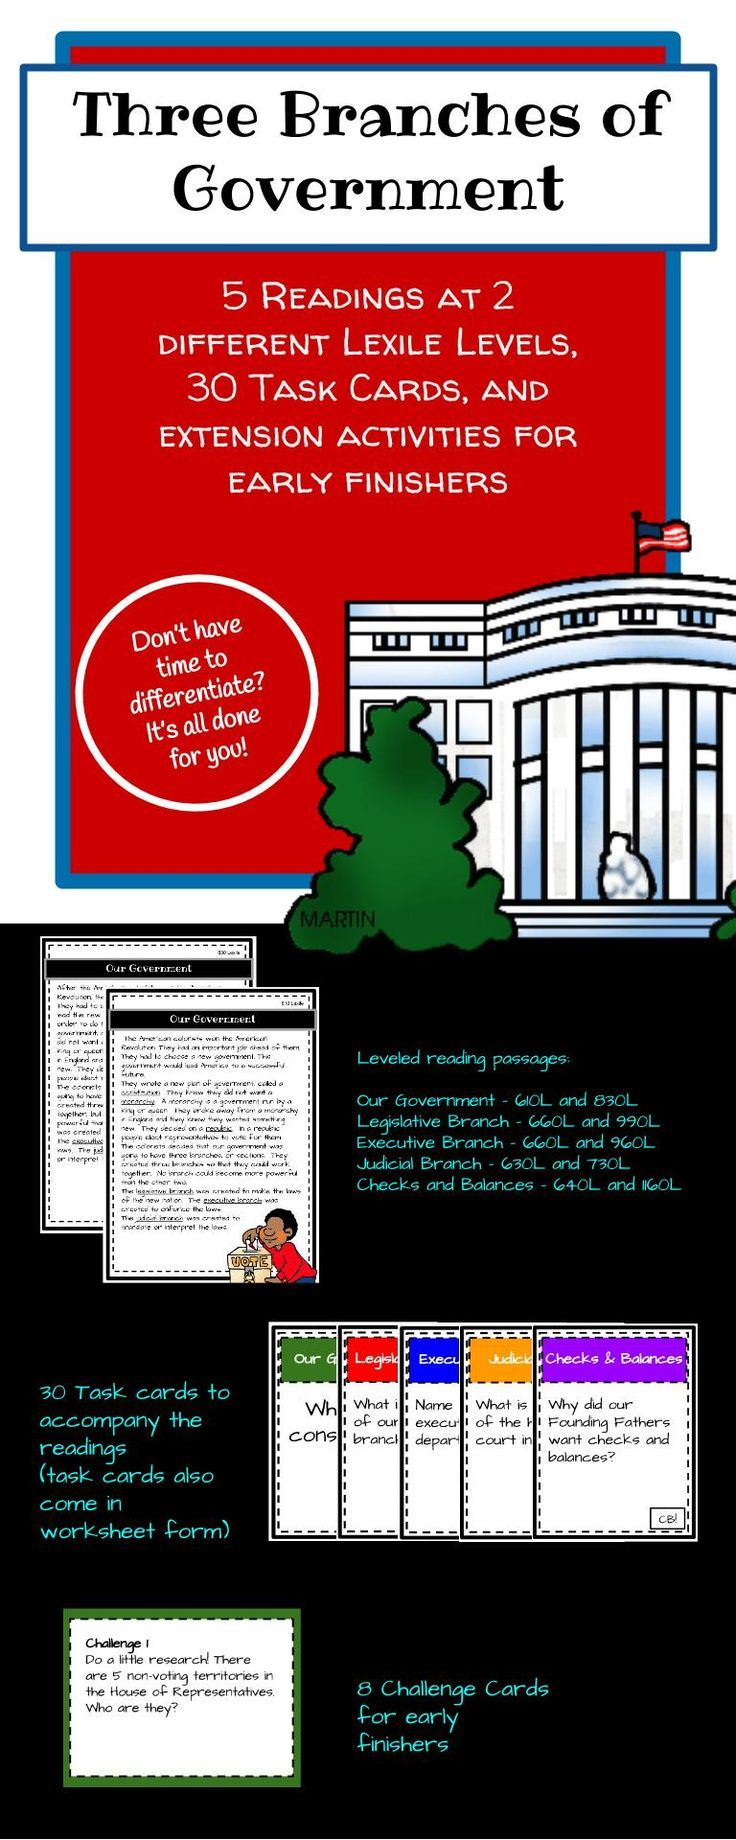 Three Branches Of Government Leveled Readings And Task Cards Differentiated Third Grade Social Studies Teaching Social Studies Social Studies Resources